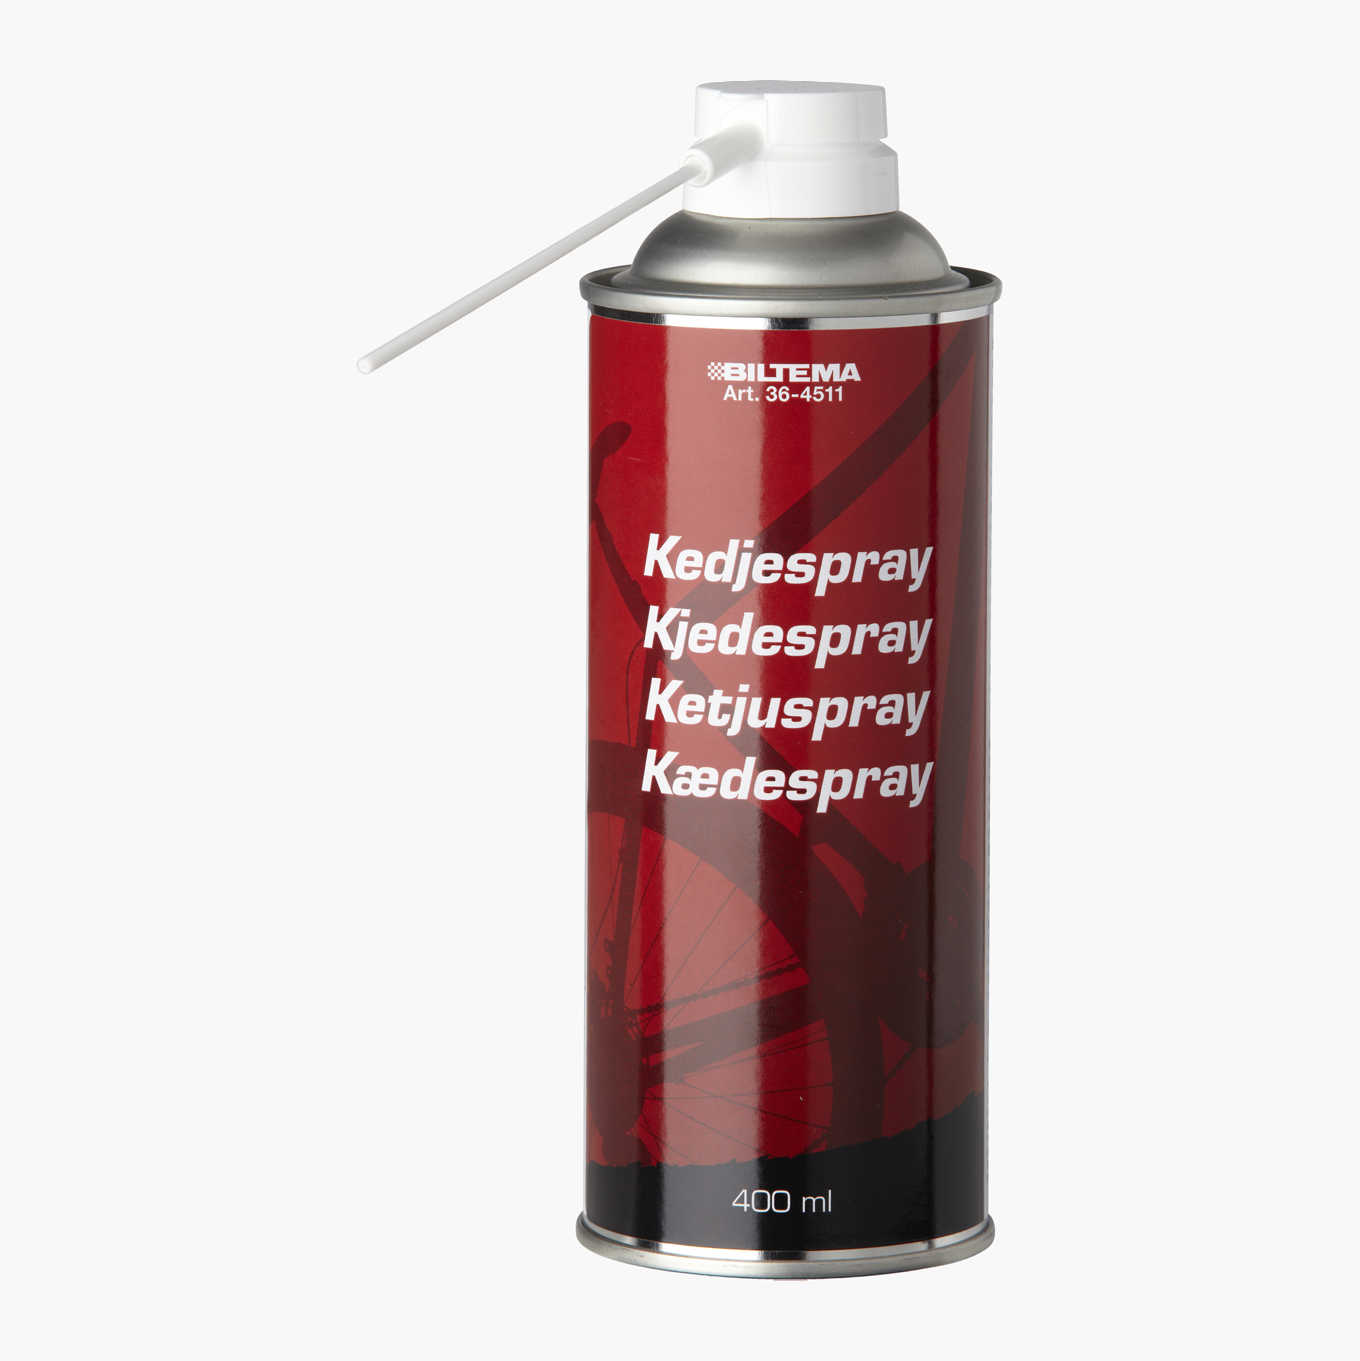 Kædespray | polish_and_lubricant_component